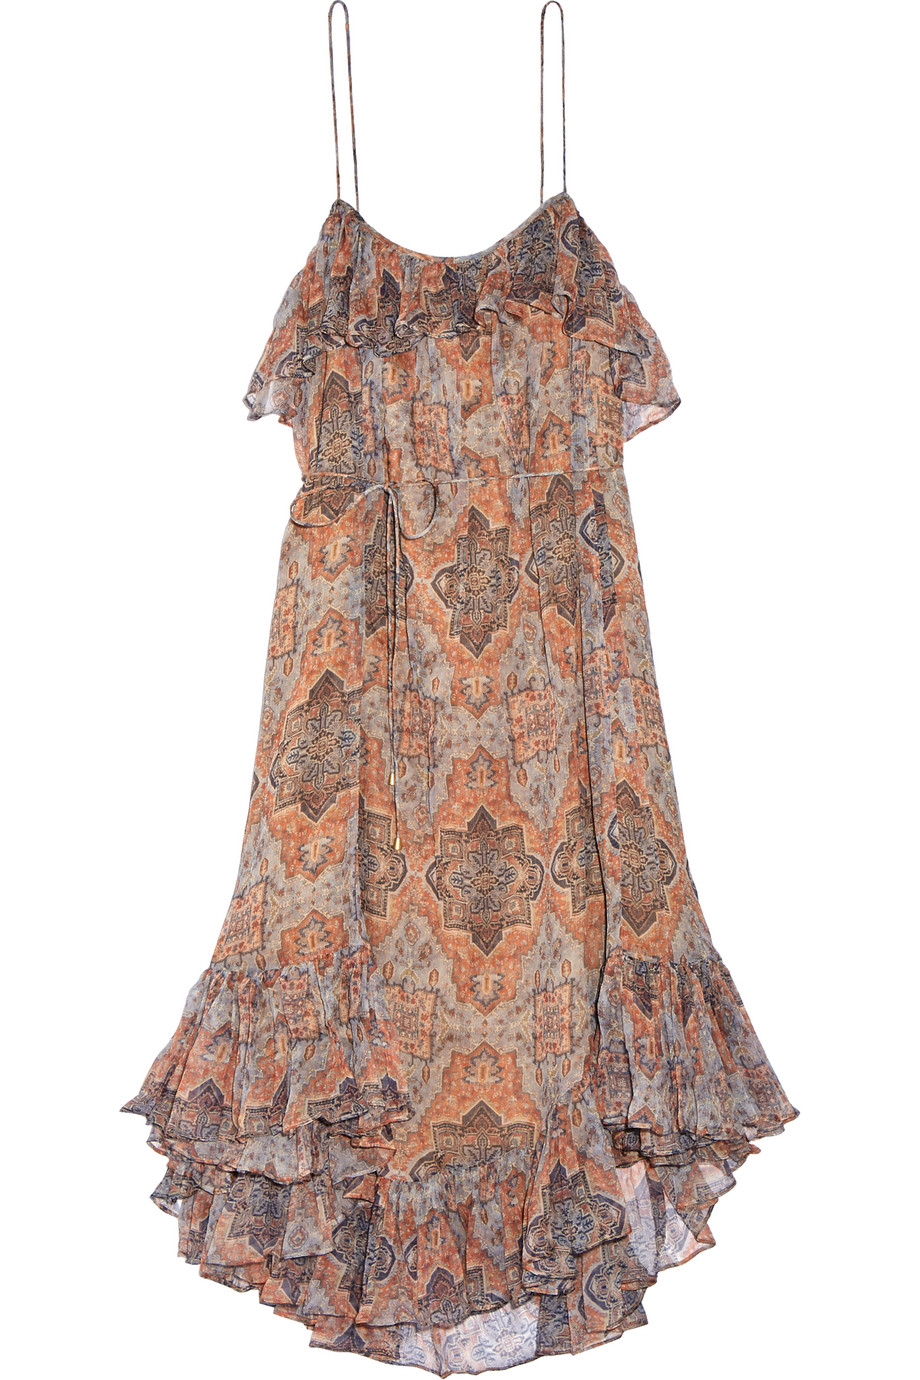 Zimmermann Harlequin Heriz Printed Crinkled Silk-Georgette Dress, Orange/Light Gray, Women's - harlequin, Size: 0